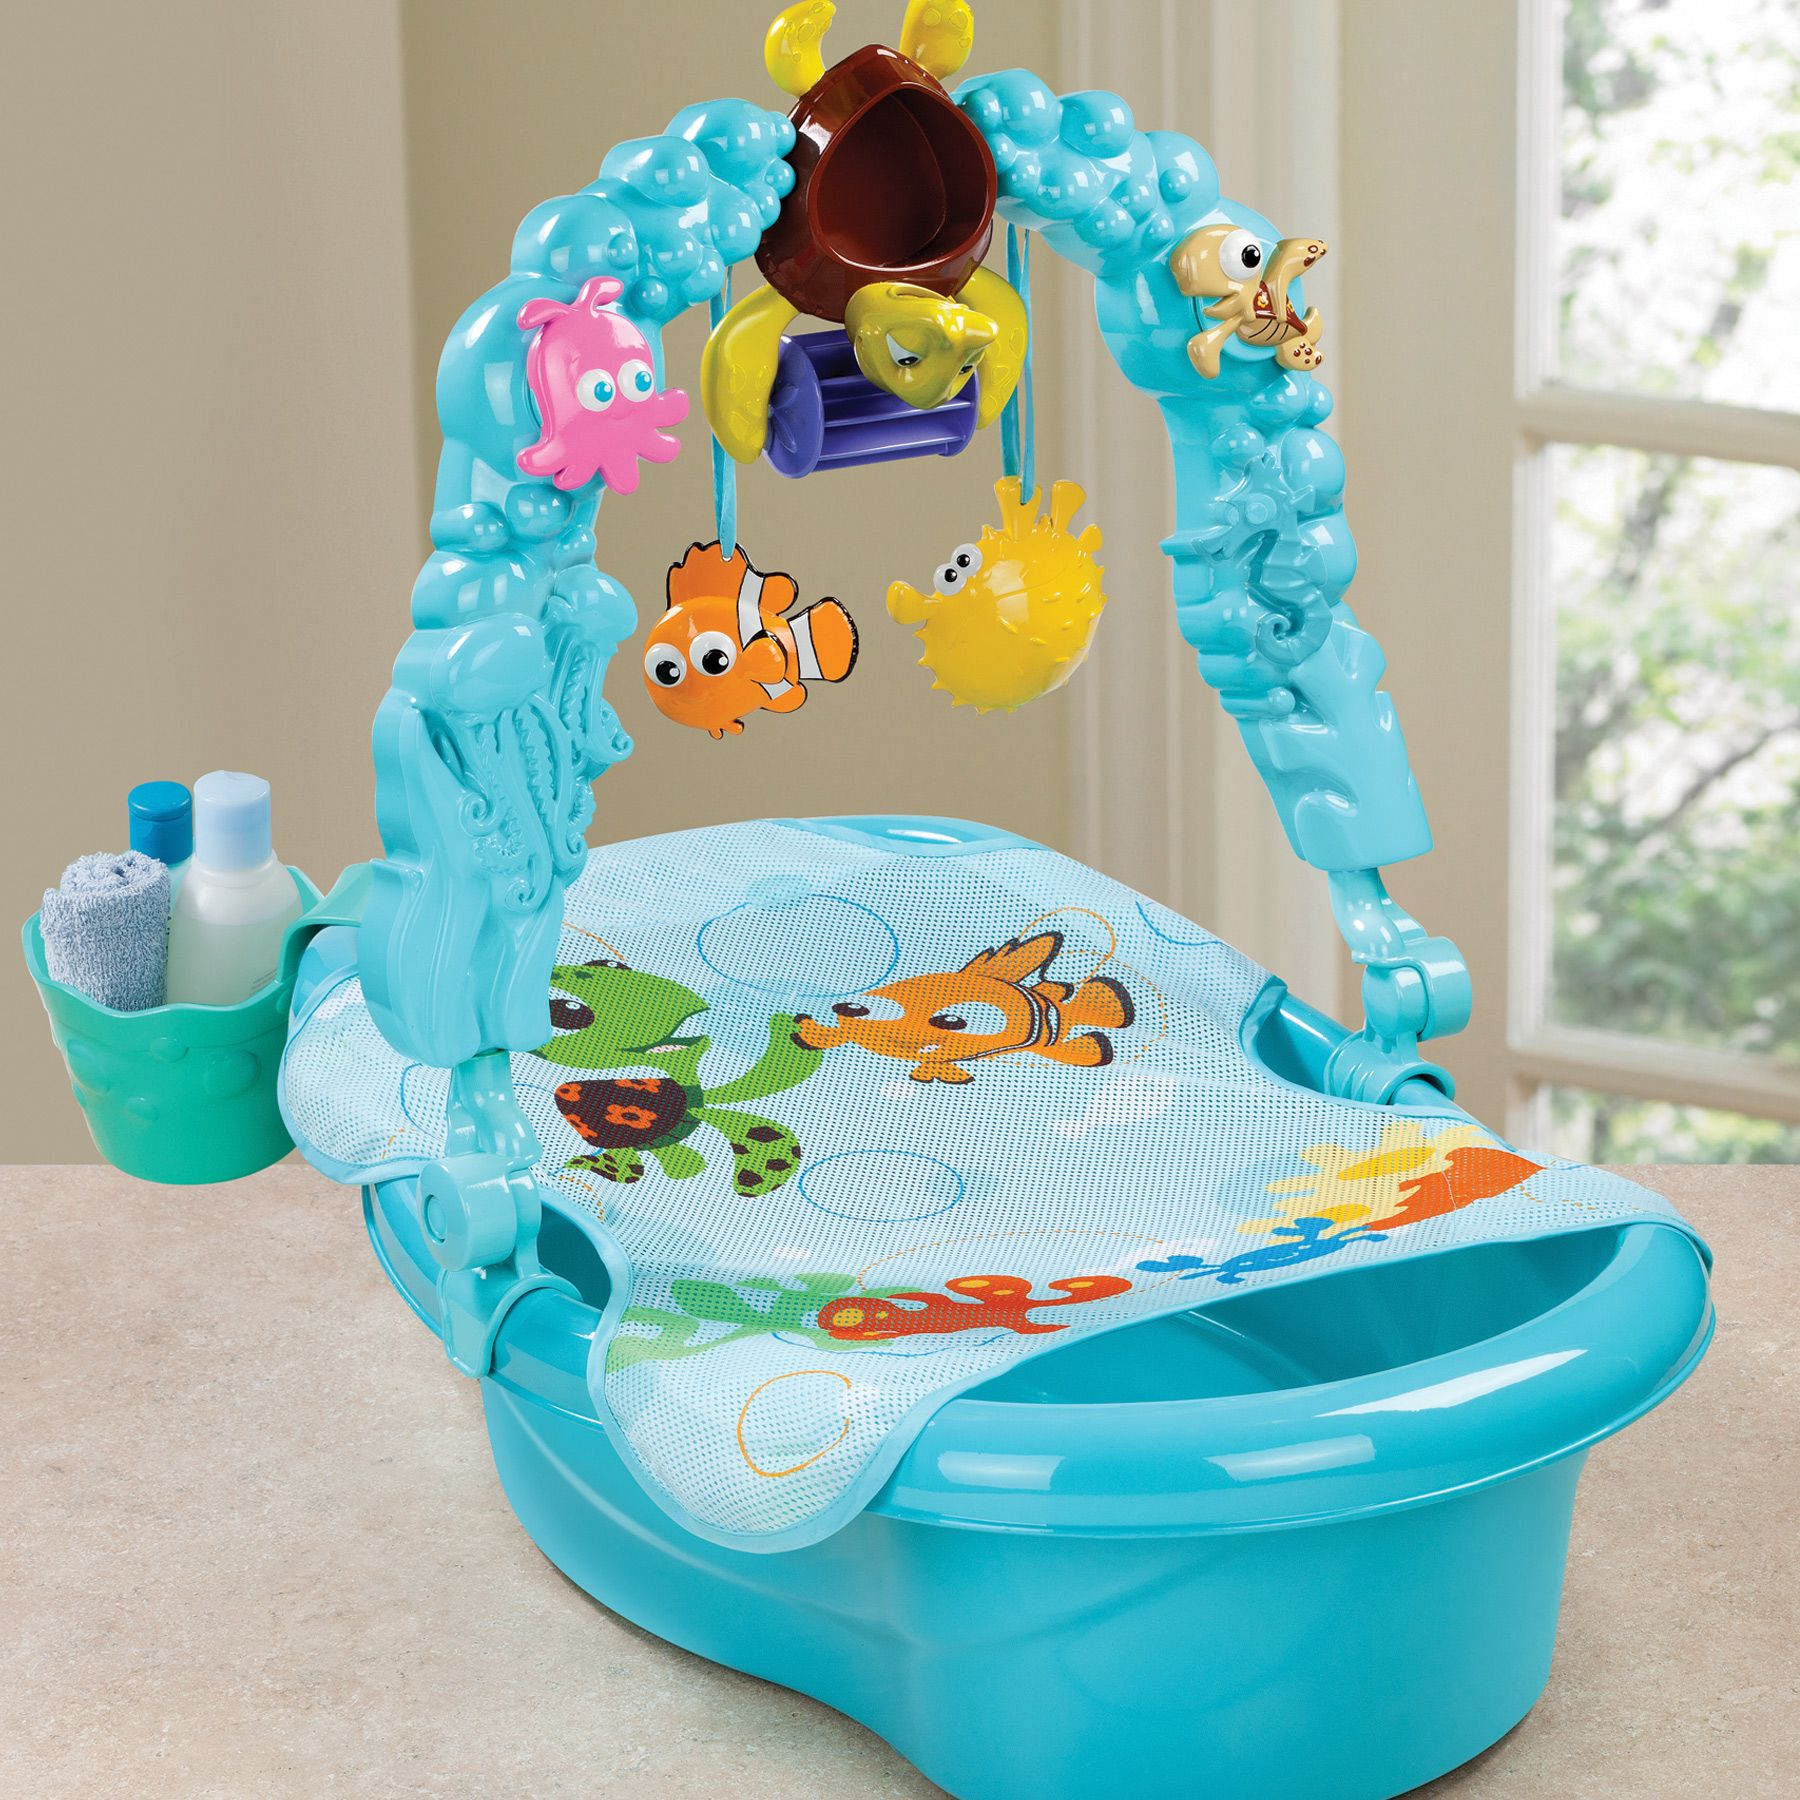 17 Best Images About Nemo Nursery On Pinterest Babies R Us Finding Nemo Toys And Switch Plates